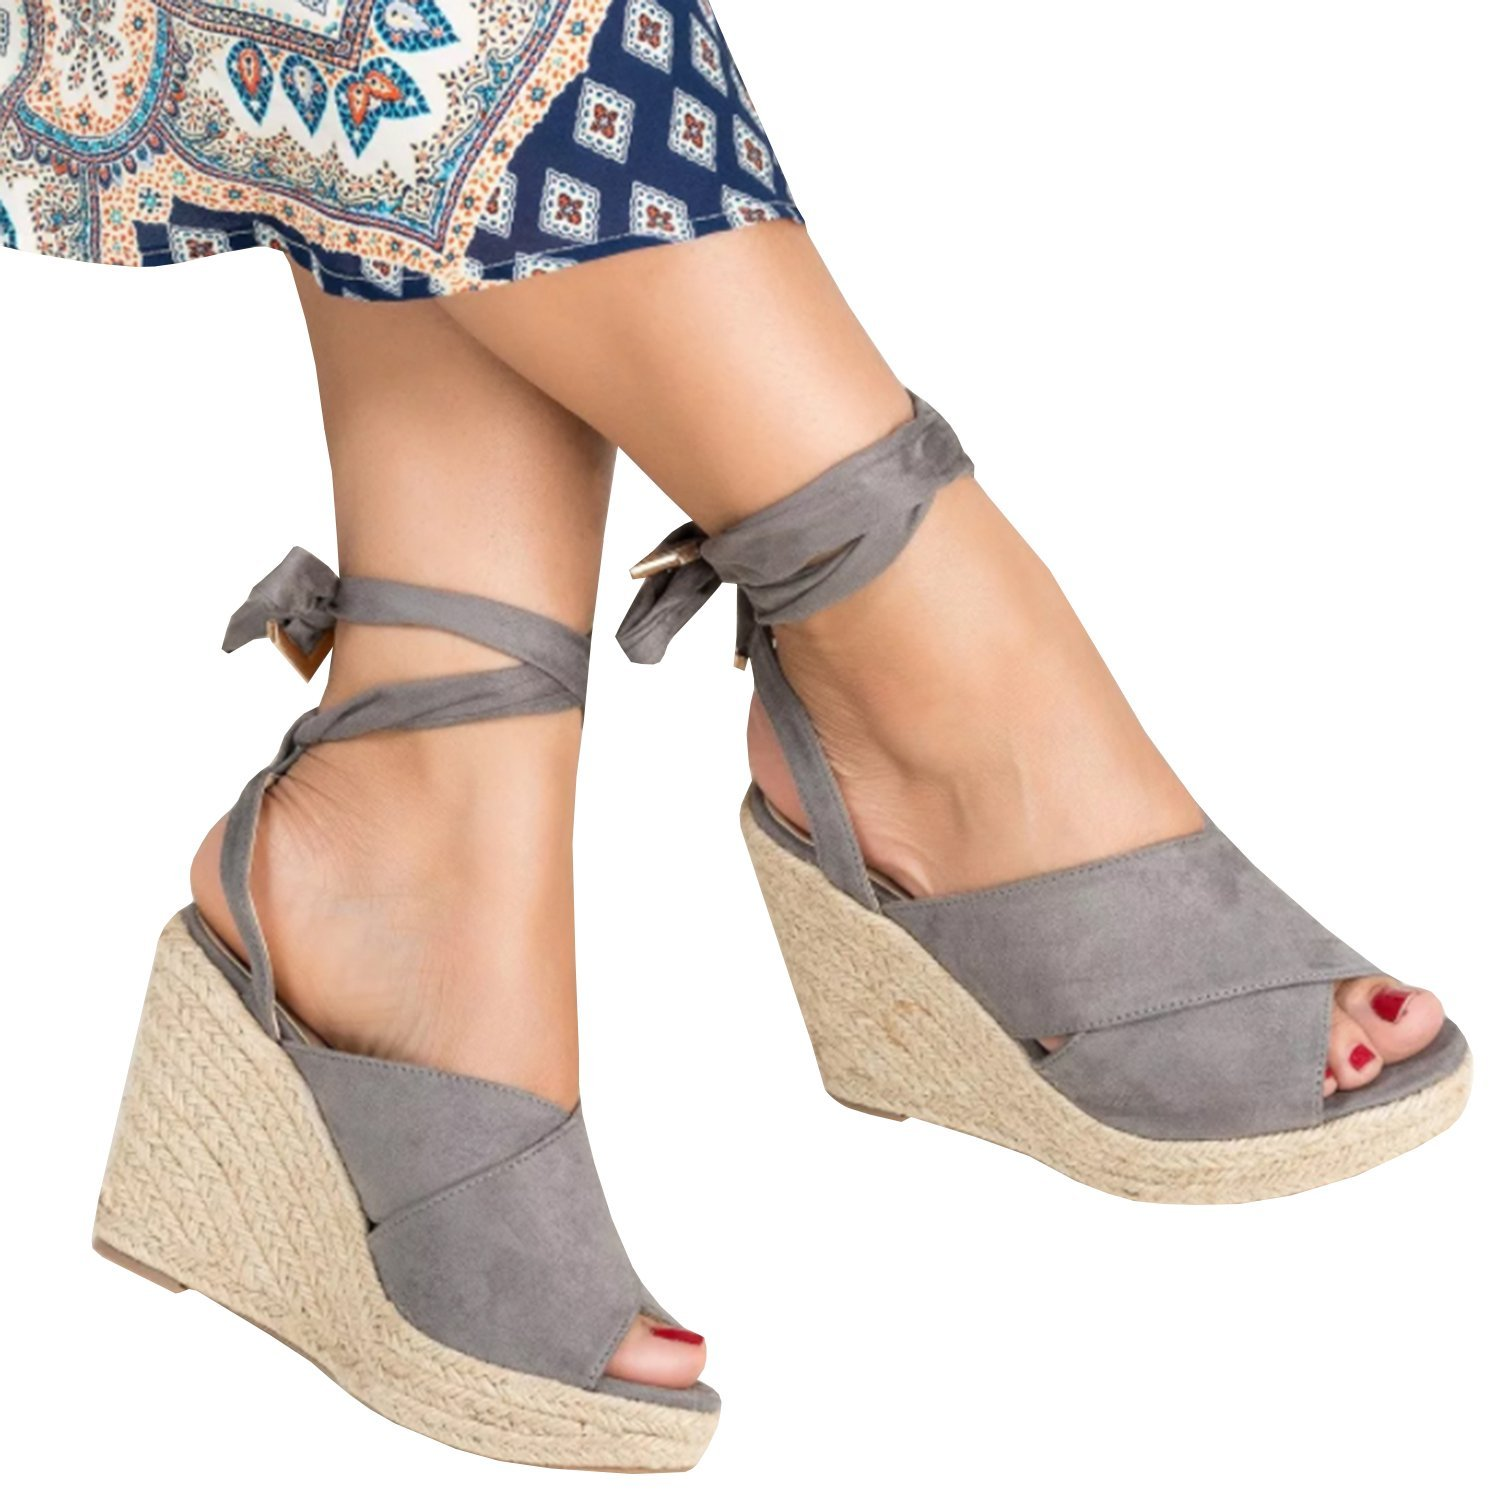 fb549e59b3bd Get Quotations · Enjoybuy Womens Espadrille Wedge Peep Toe Sandals Summer  Ankle Tie Up Platform Shoes High Heel Sandal